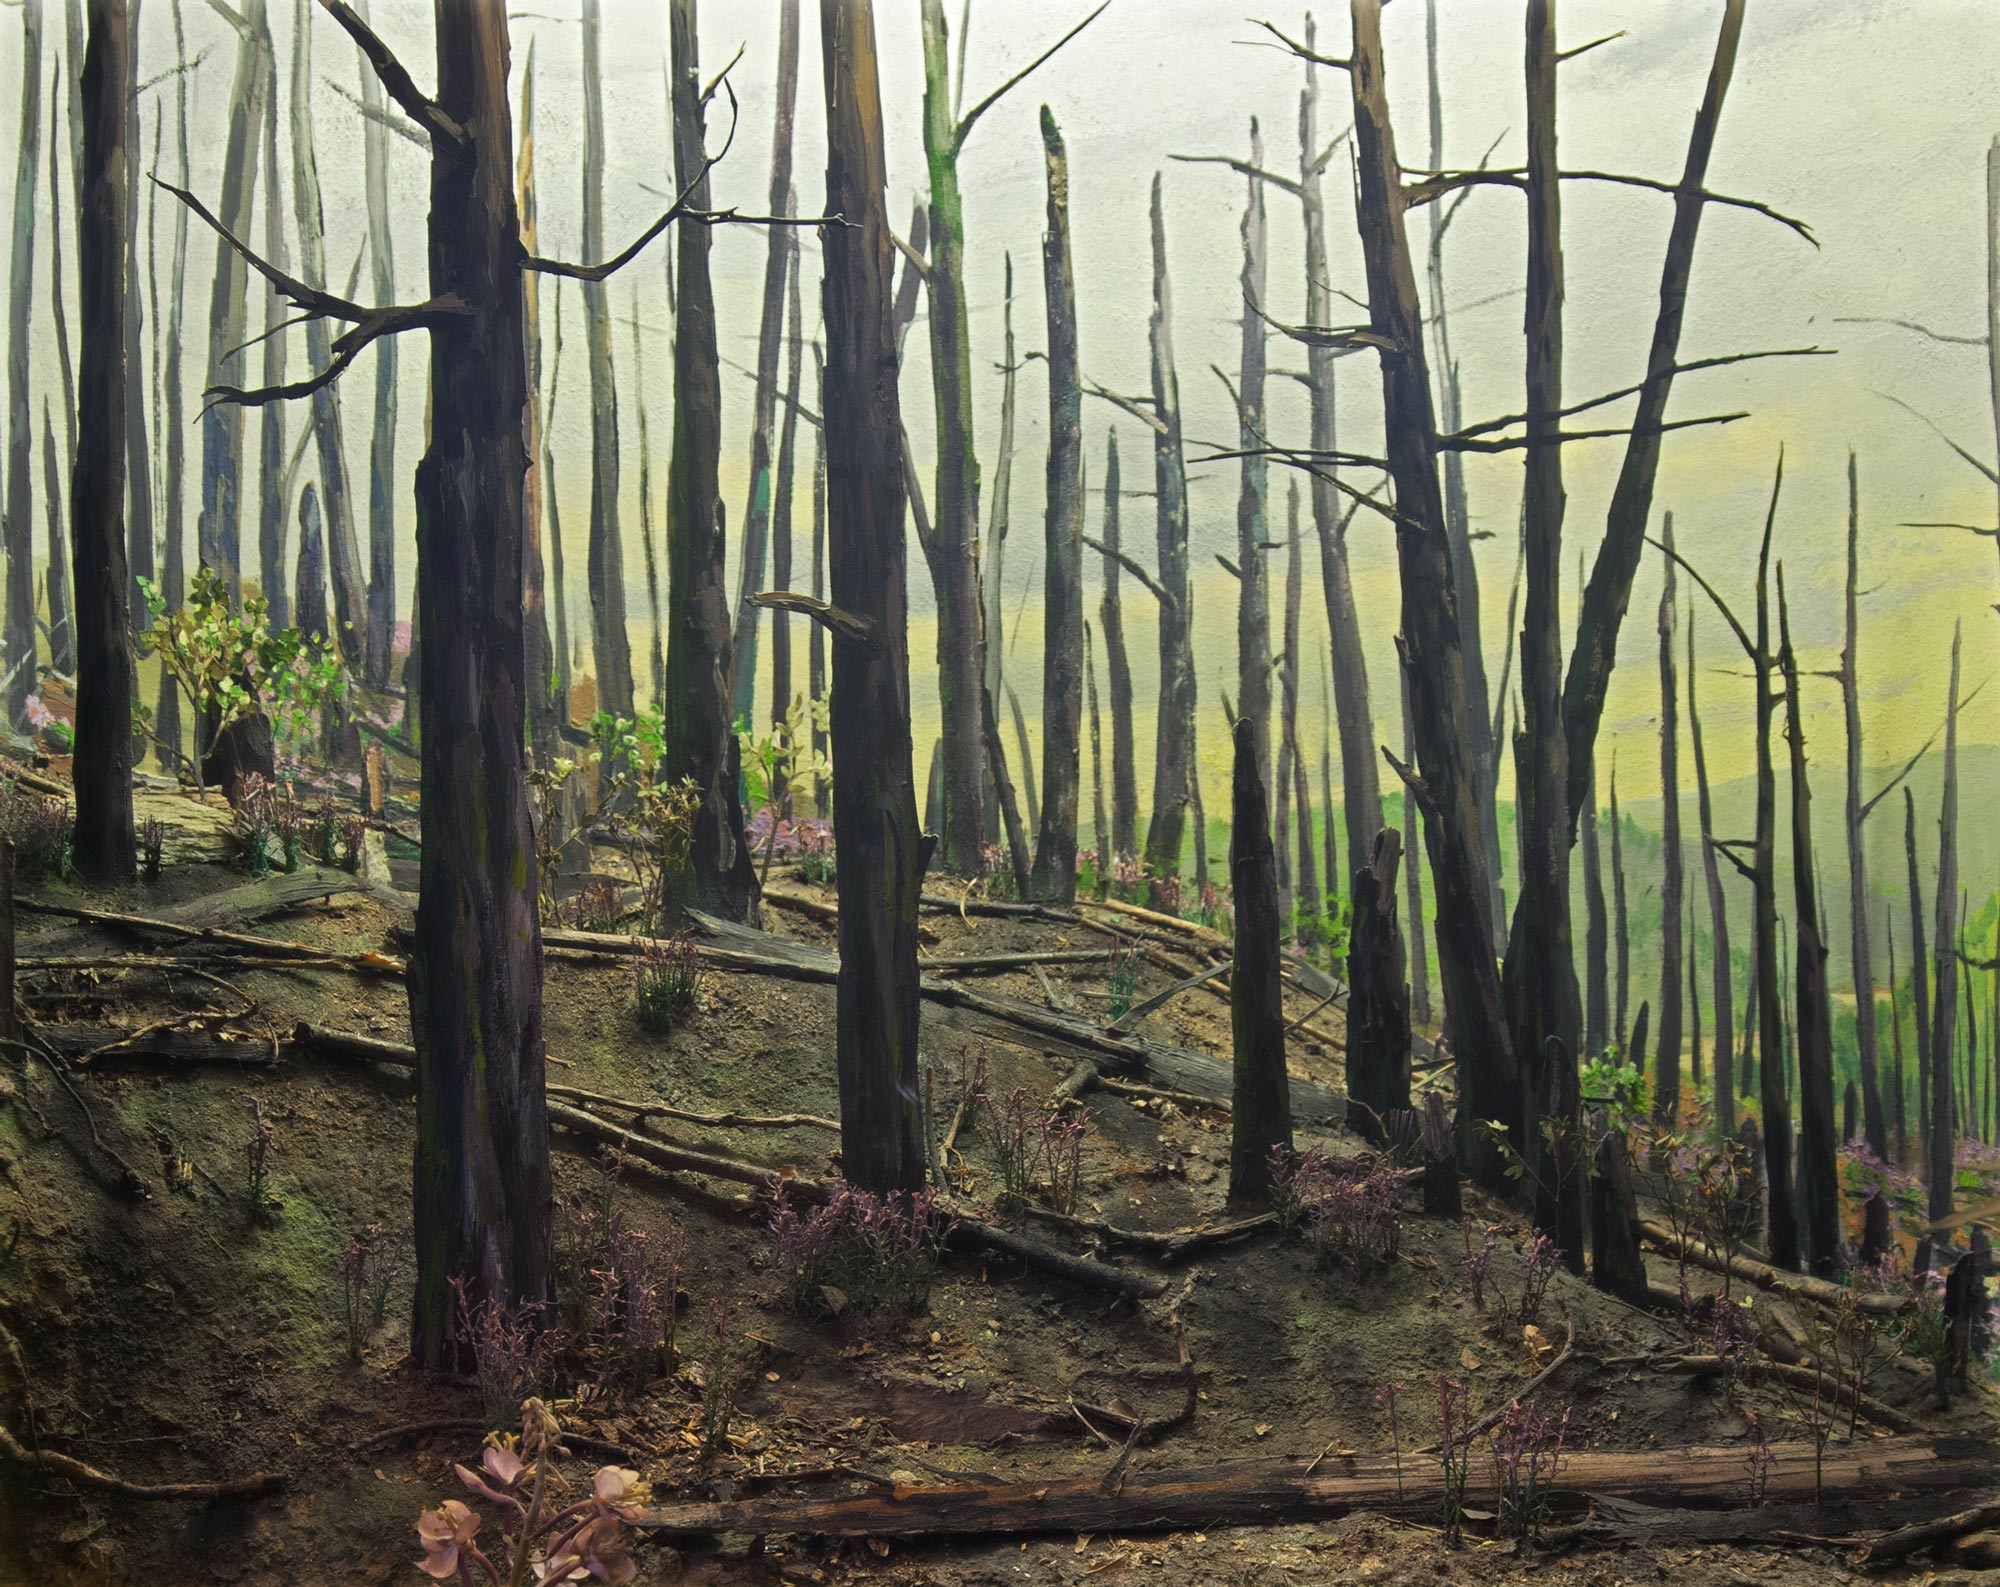 Diorama showing a forest after a fire.